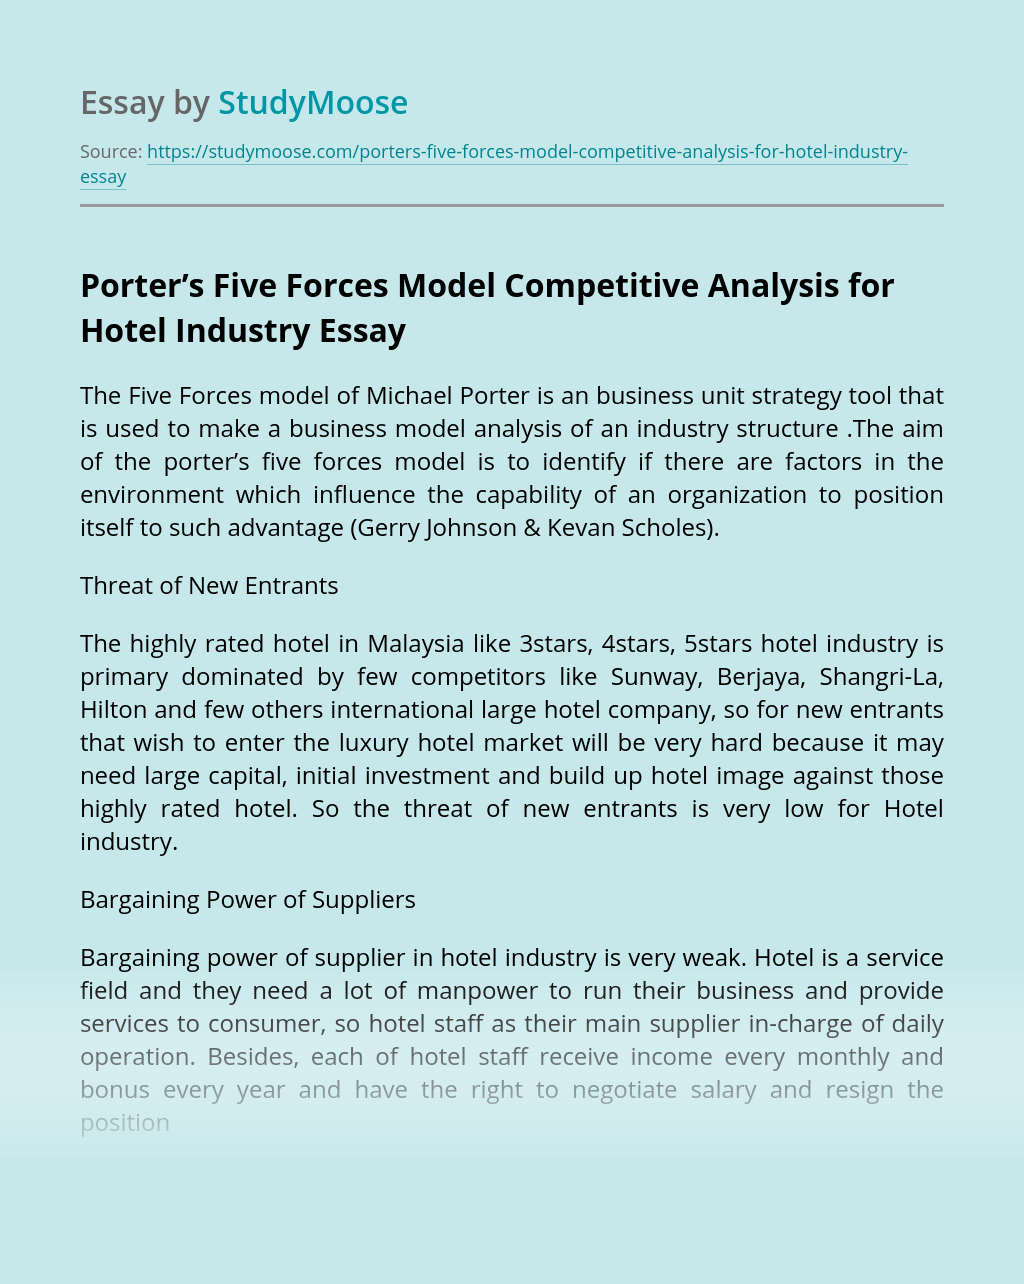 Porter's Five Forces Model Competitive Analysis for Hotel Industry